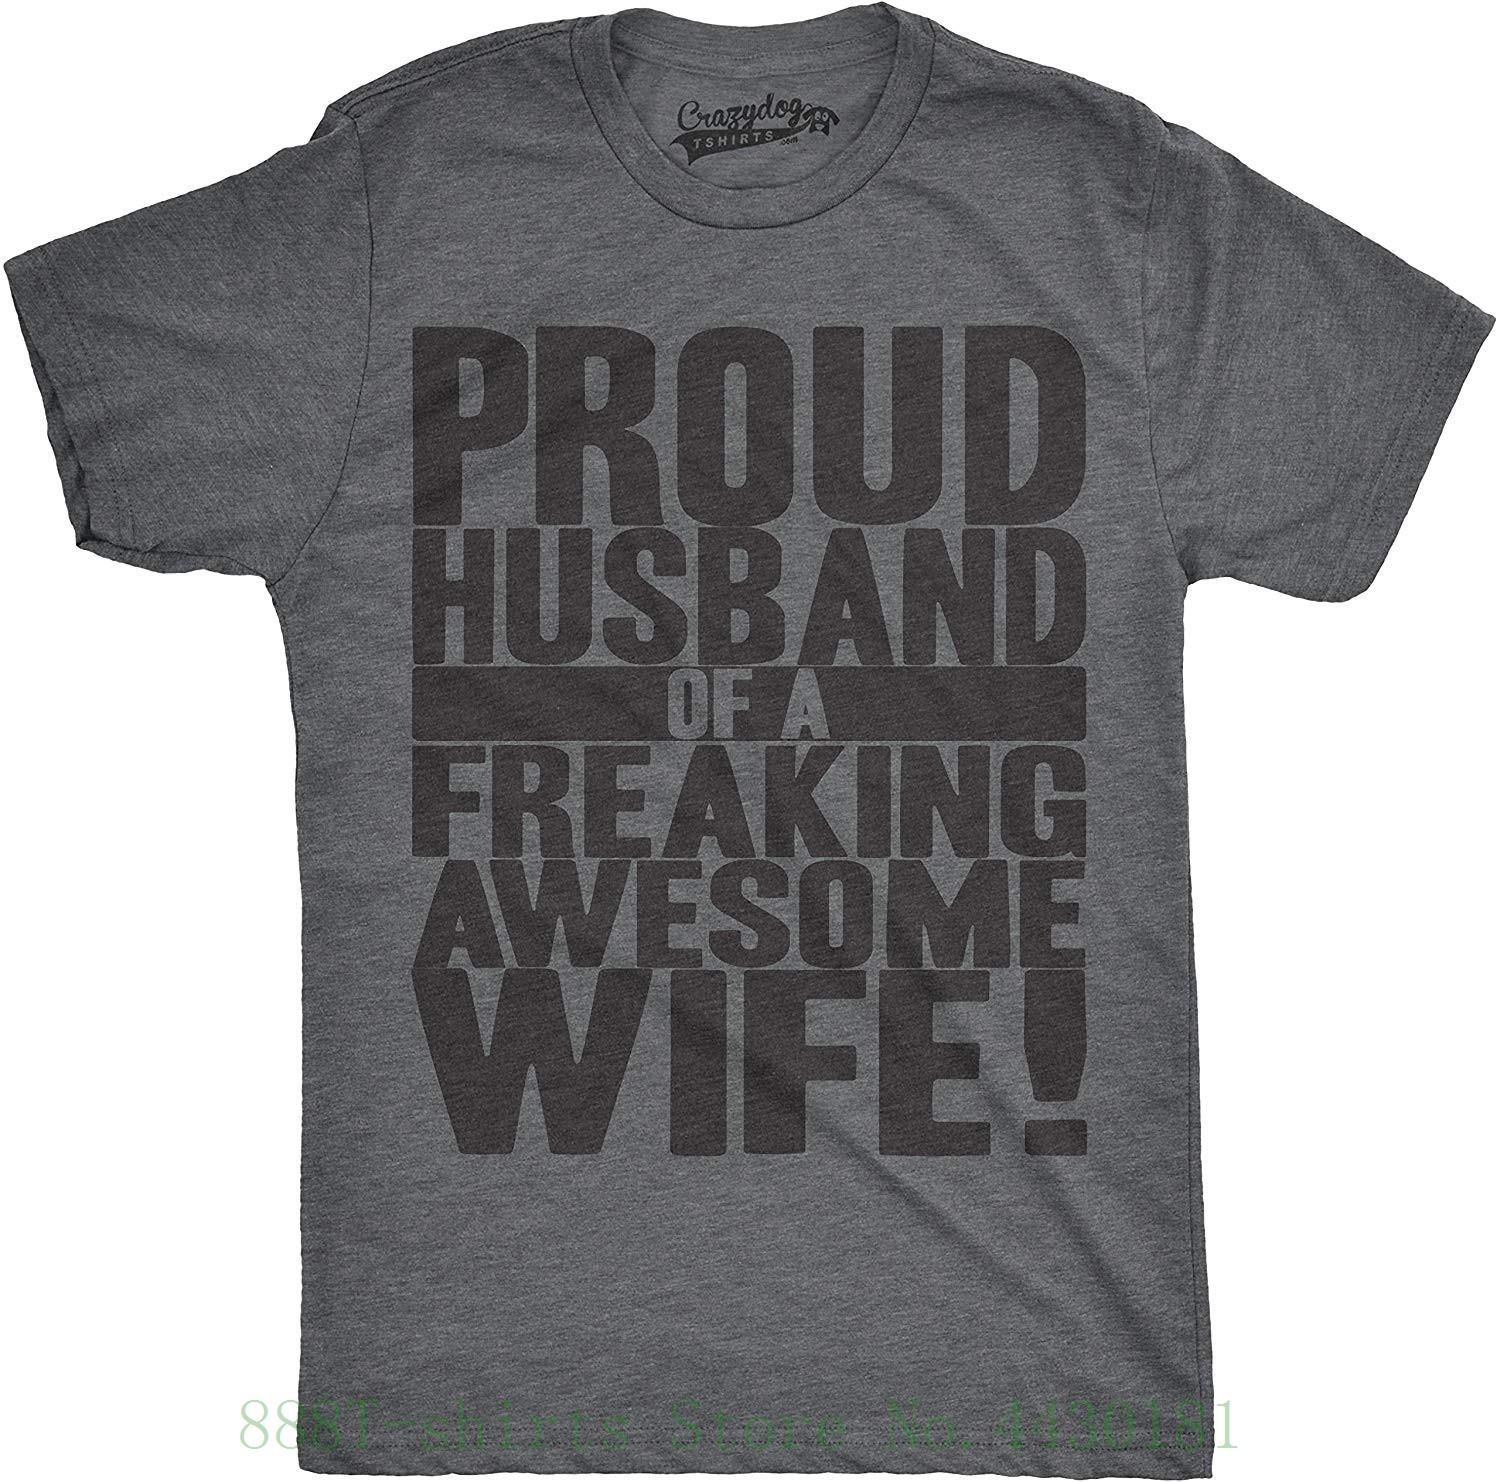 de8b04e8 Tshirts Mens Proud Husband Of A Freaking Awesome Wife Funny Marriage T Shirt  Homme Fashion New Arrival Simple Ts Shirt Buy Funny T Shirts From ...